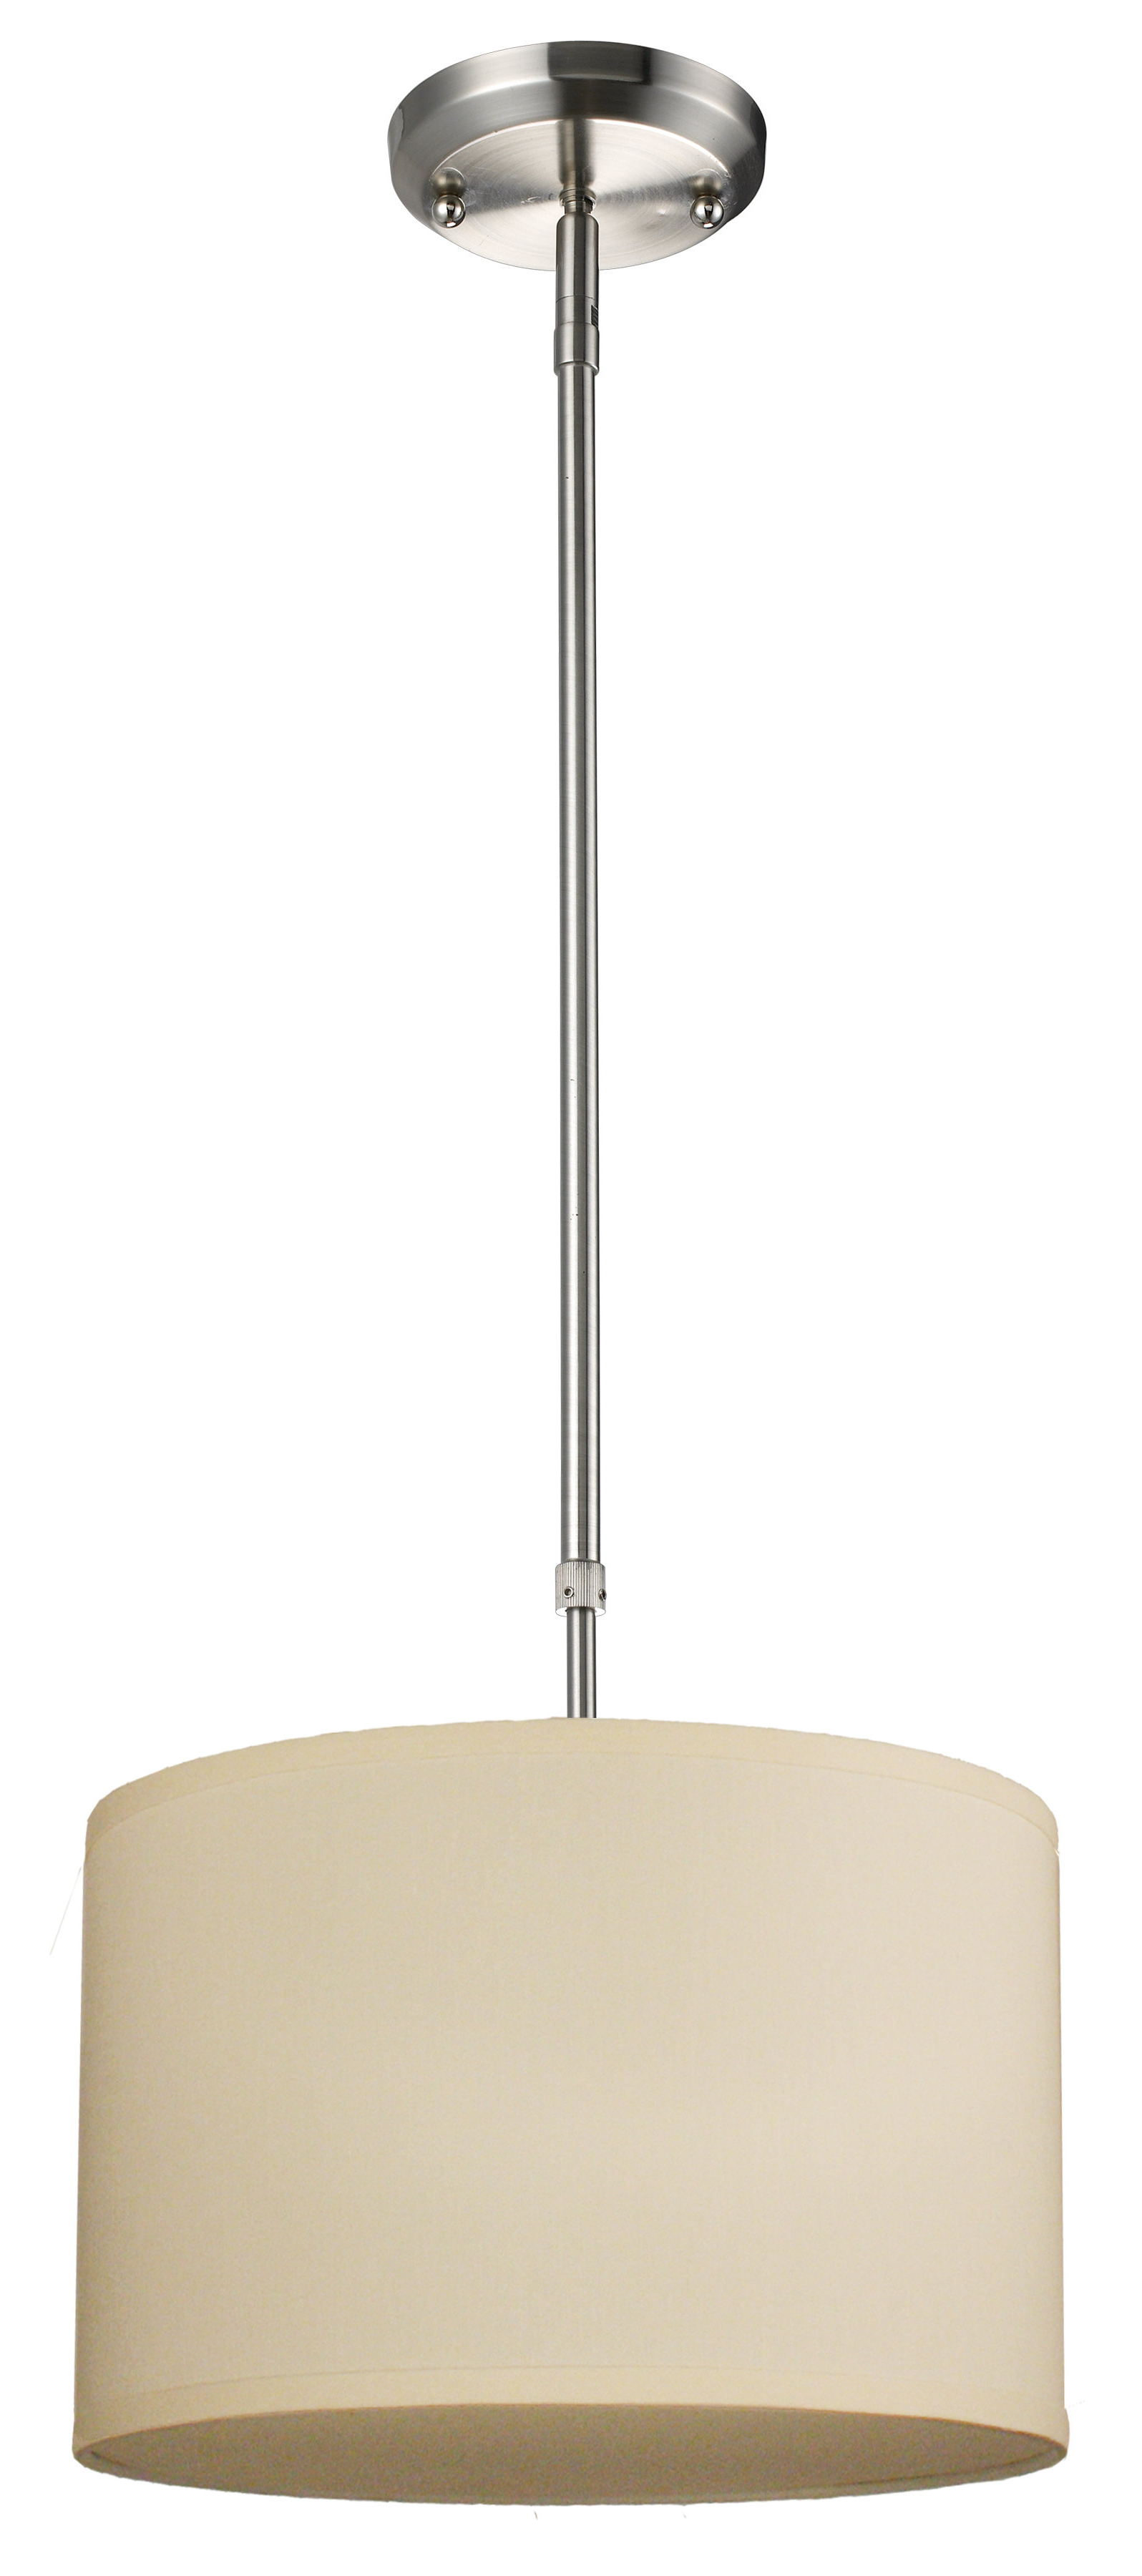 Most Up To Date Kasey 1 Light Single Drum Pendant Inside Kasey 3 Light Single Drum Pendants (View 14 of 20)